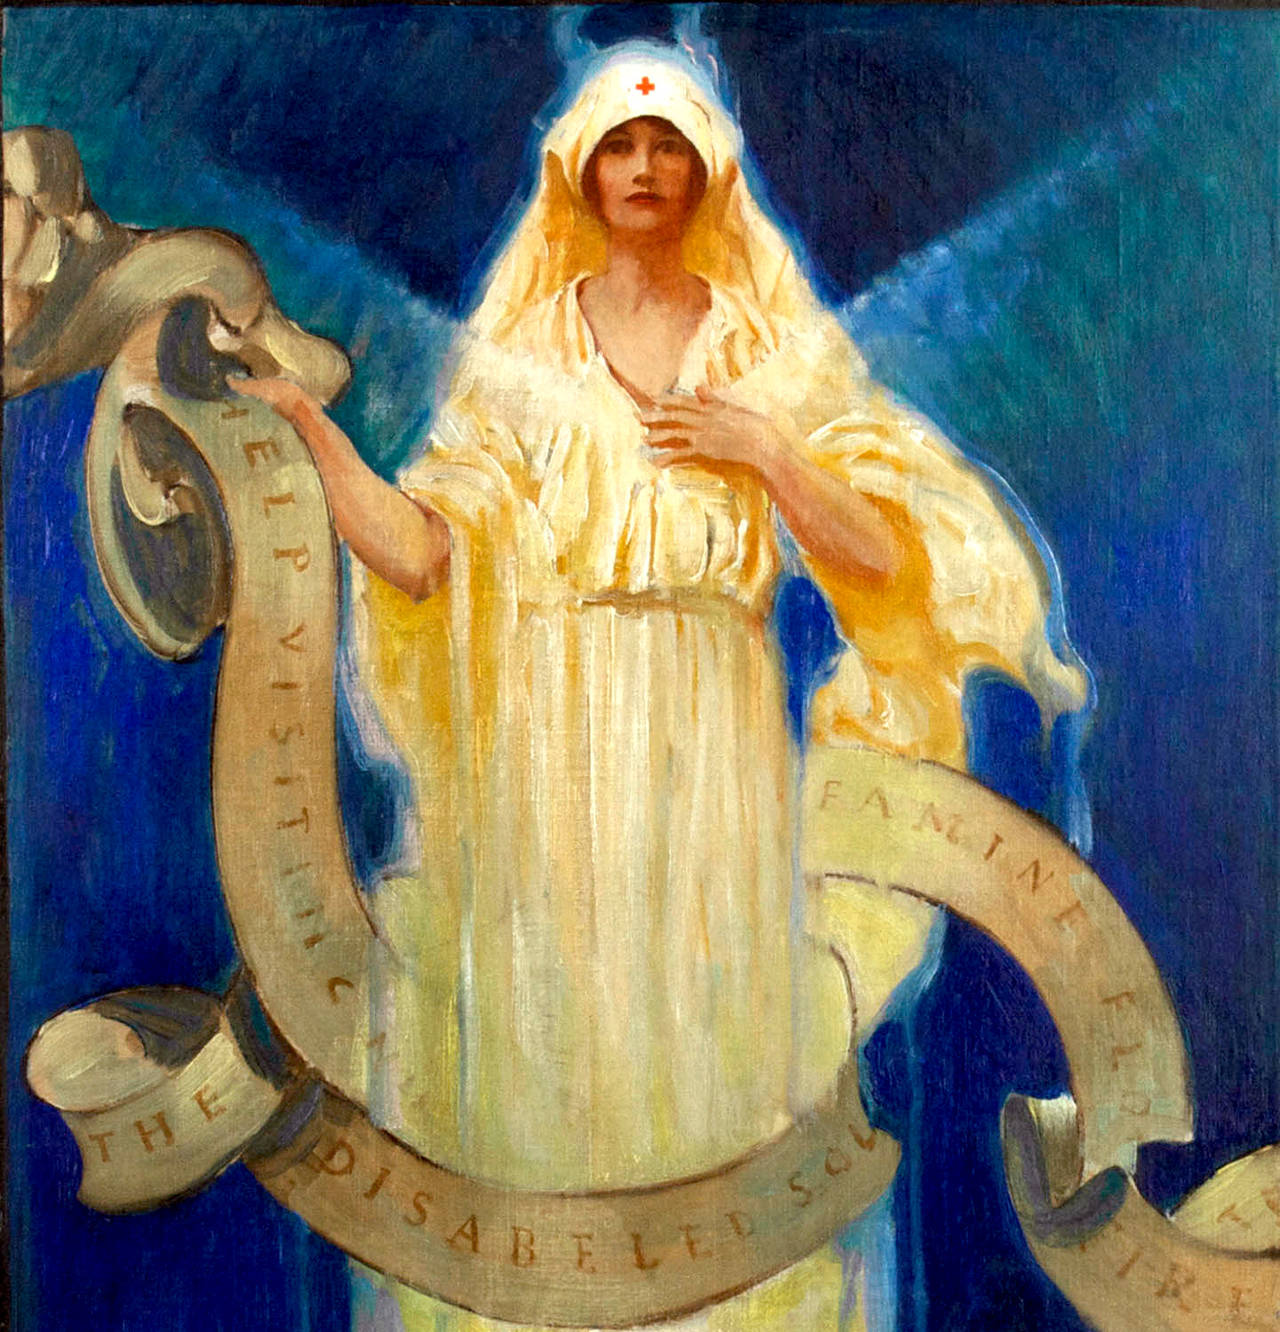 Red Cross Roll Call - Art Nouveau Painting by Unknown